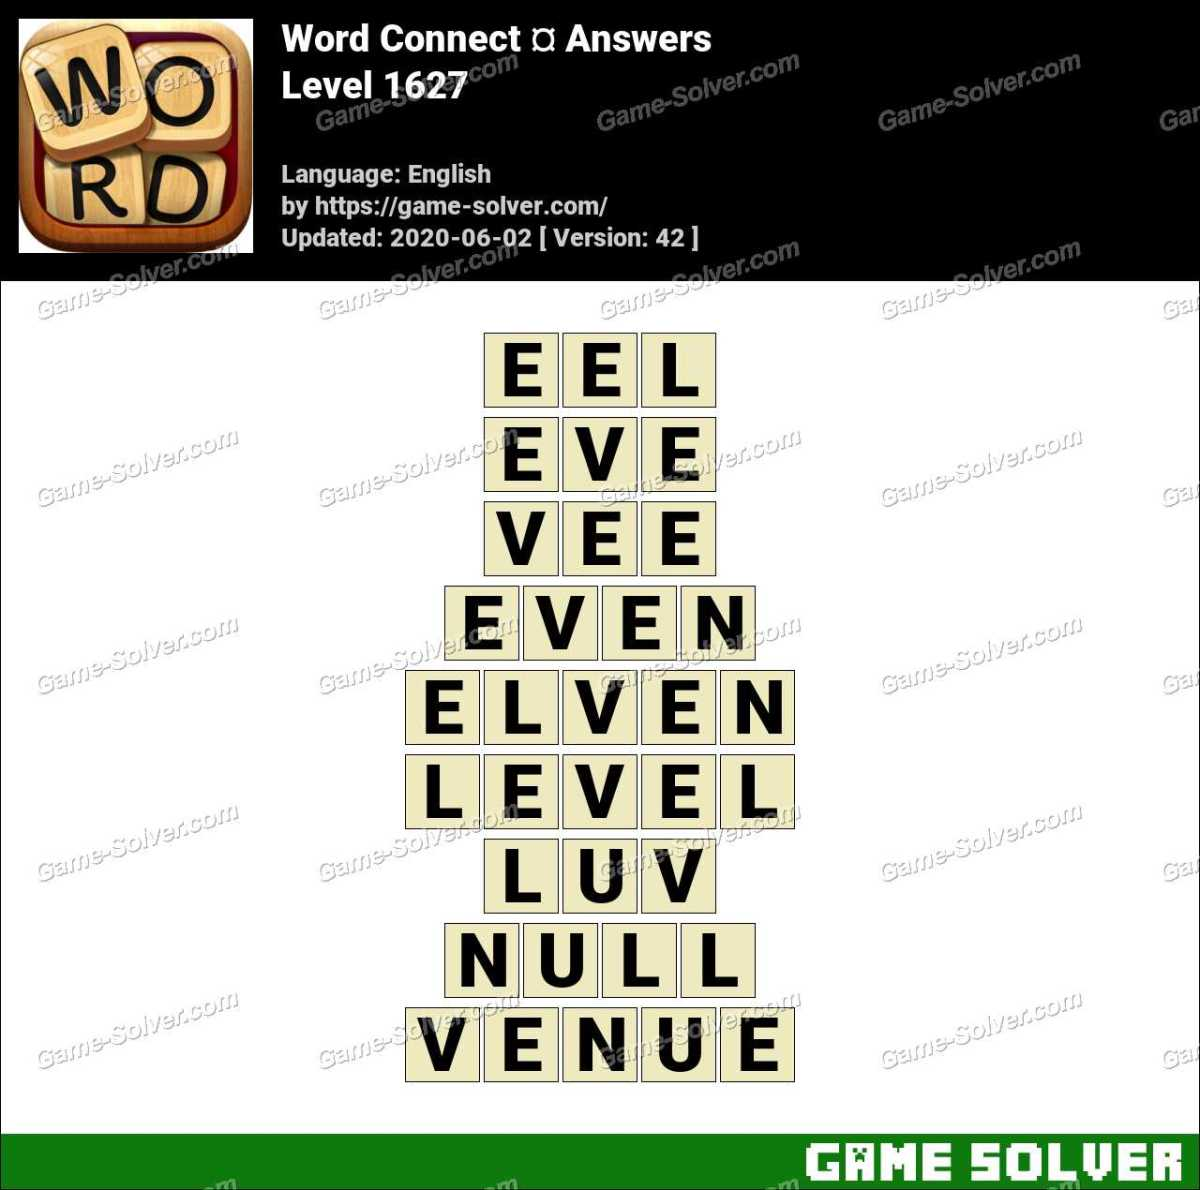 Word Connect Level 1627 Answers